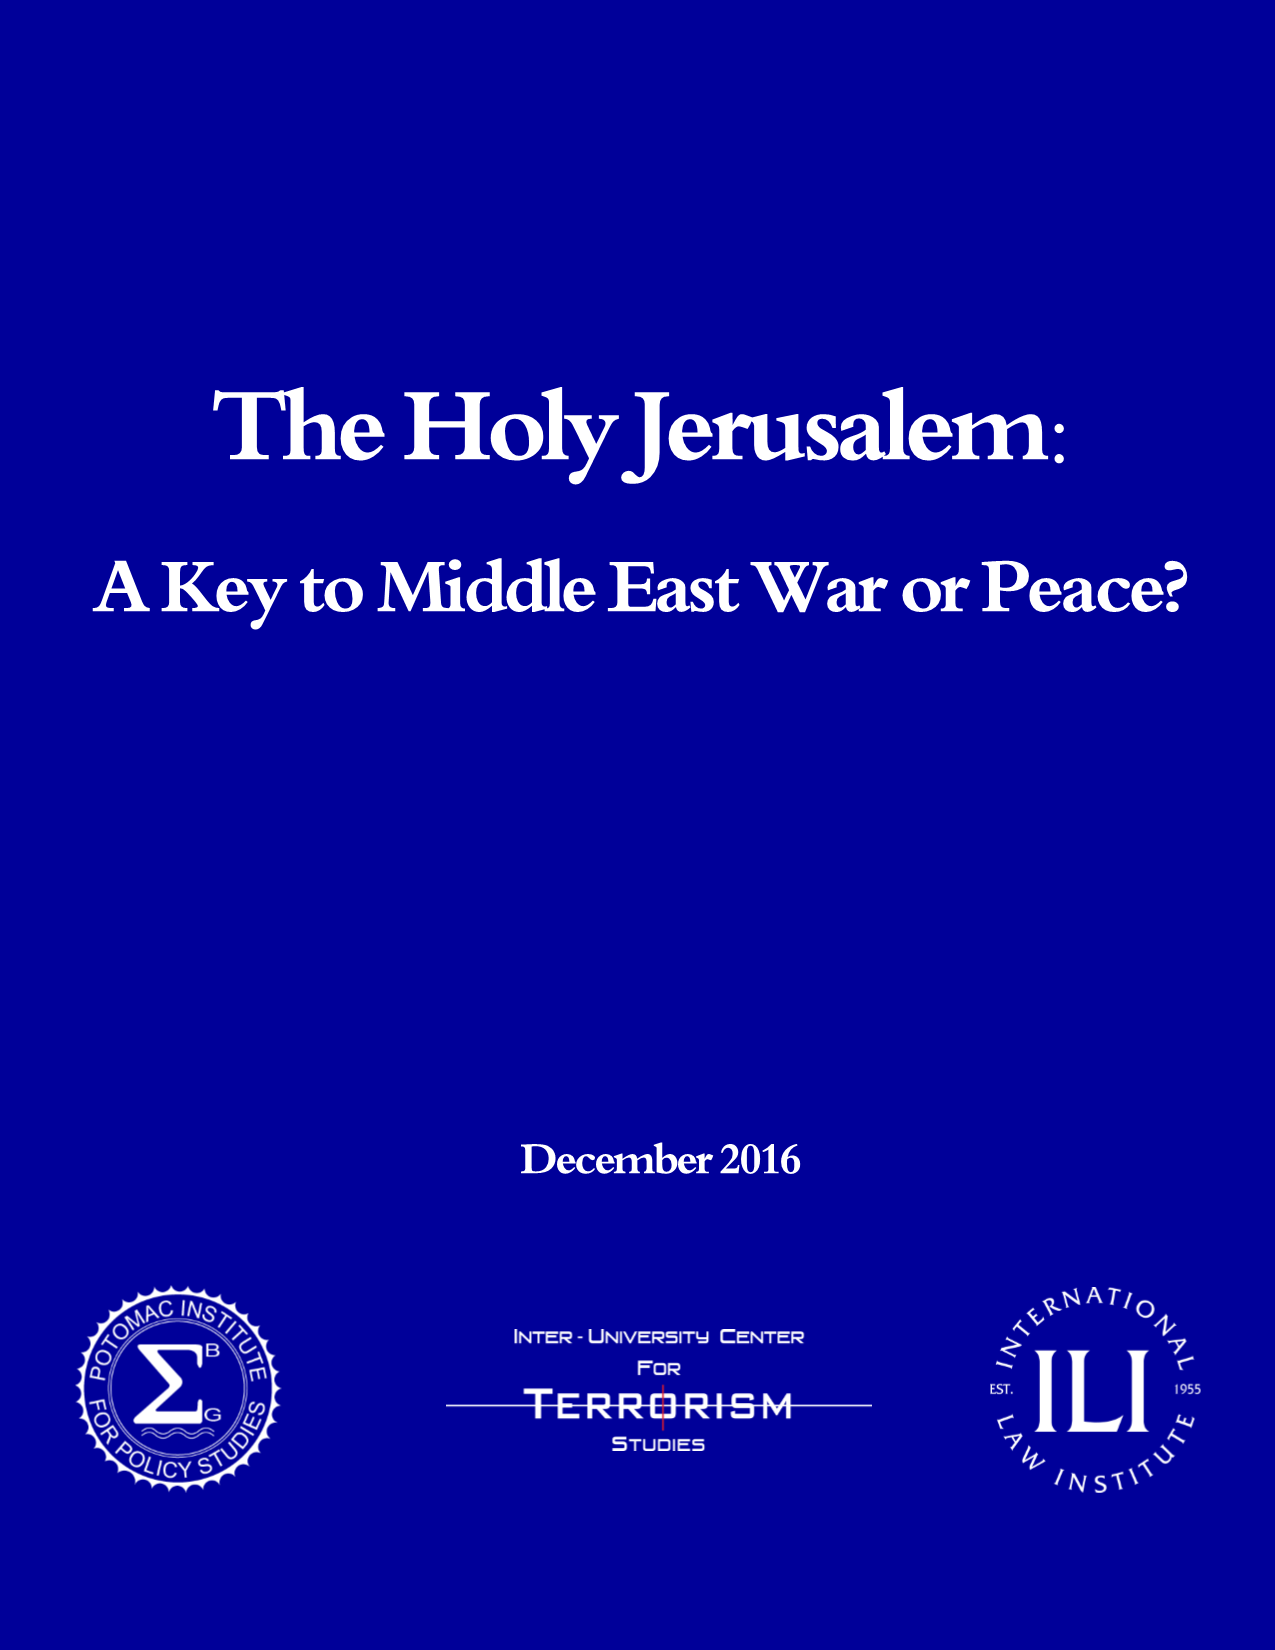 The Holy Jerusalem: A Key to Middle East War or Peace?